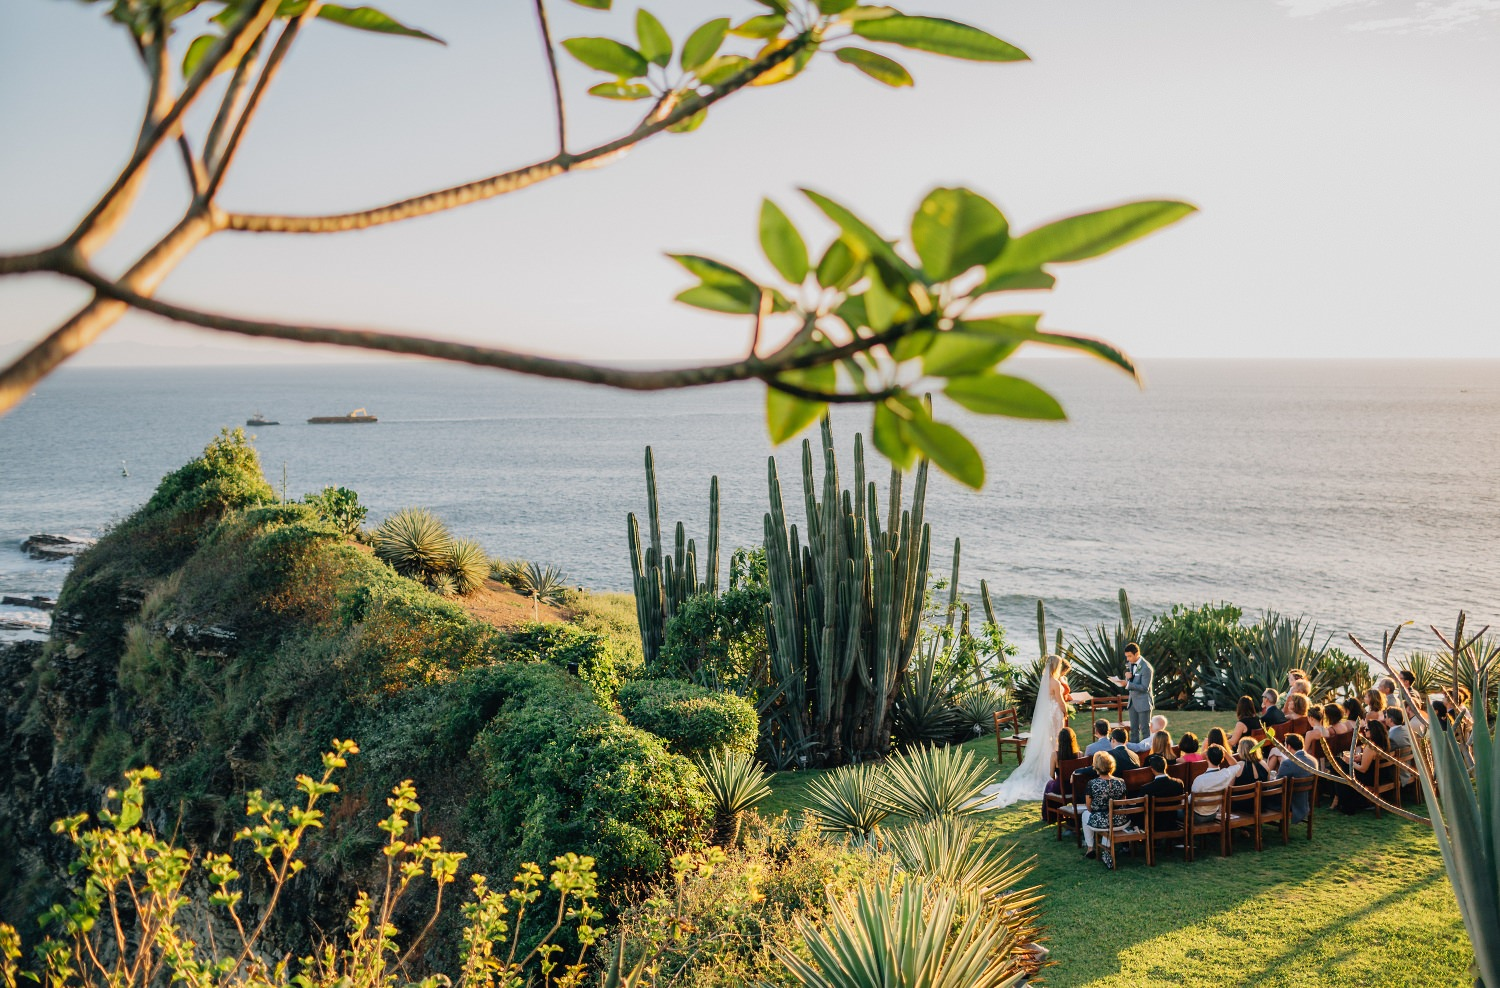 Beautiful wedding venue at the Beach - San Juan del Sur, Nicaragua.